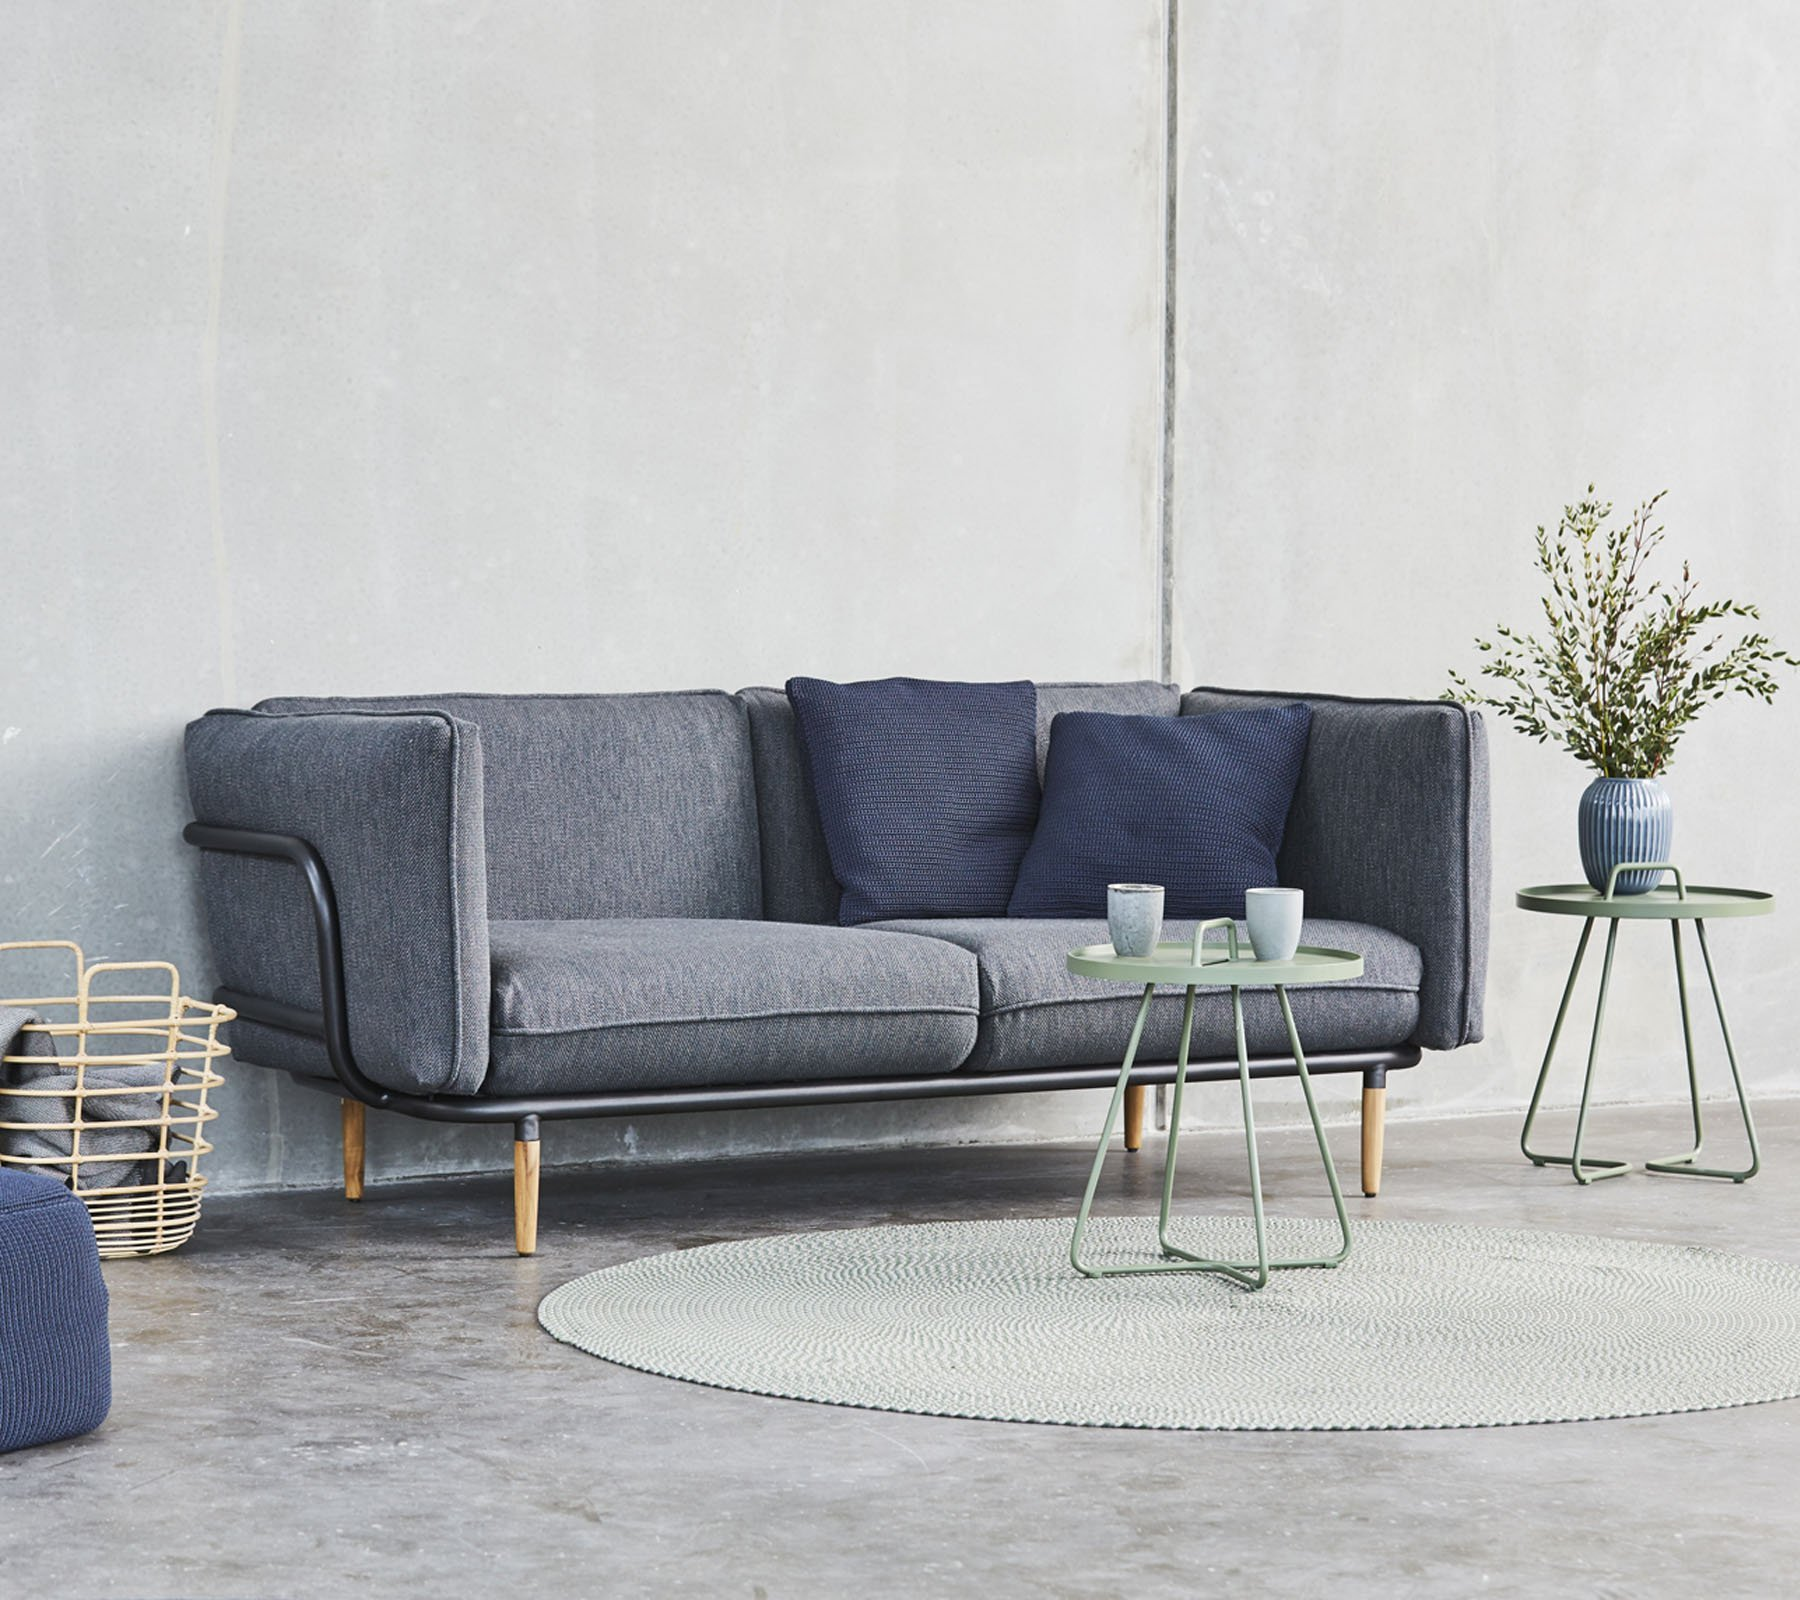 Urban 3-Seat Sofa from Cane-line